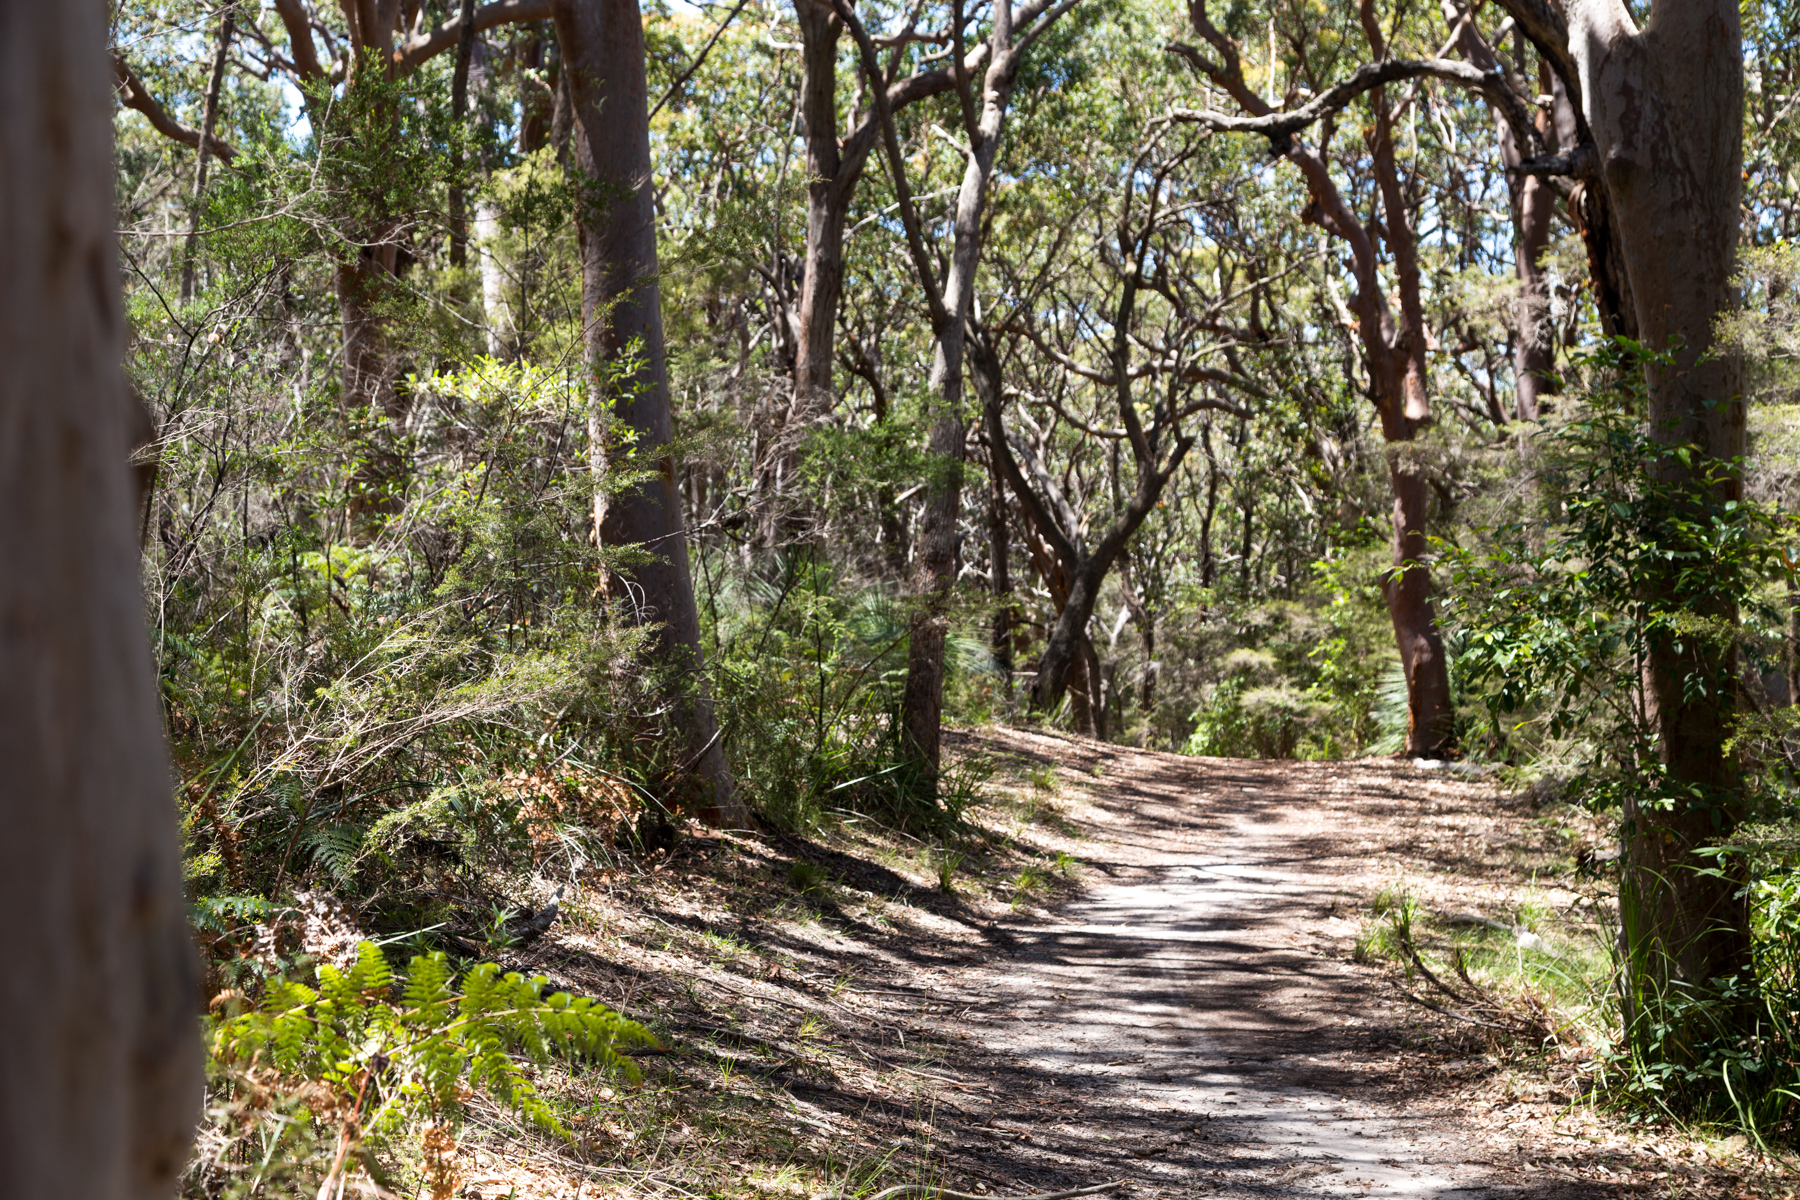 mg 6742 lr Guide to Bouddi National Park